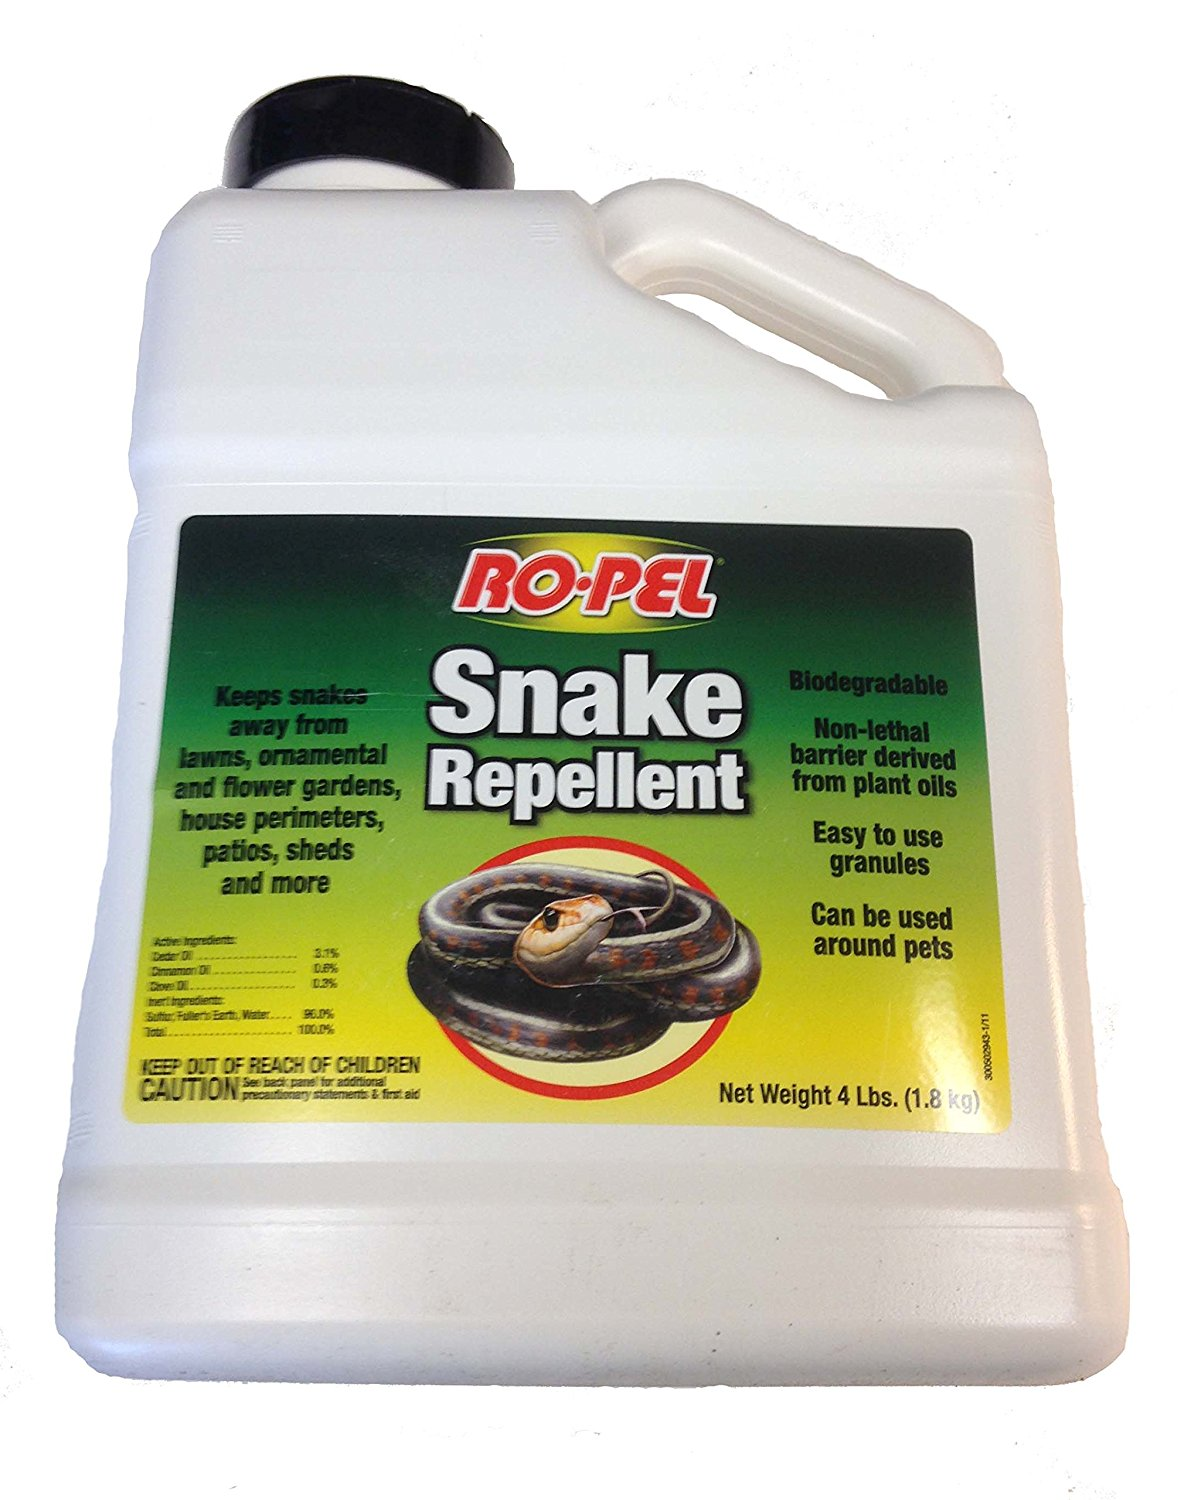 Ropel Snake Repellent